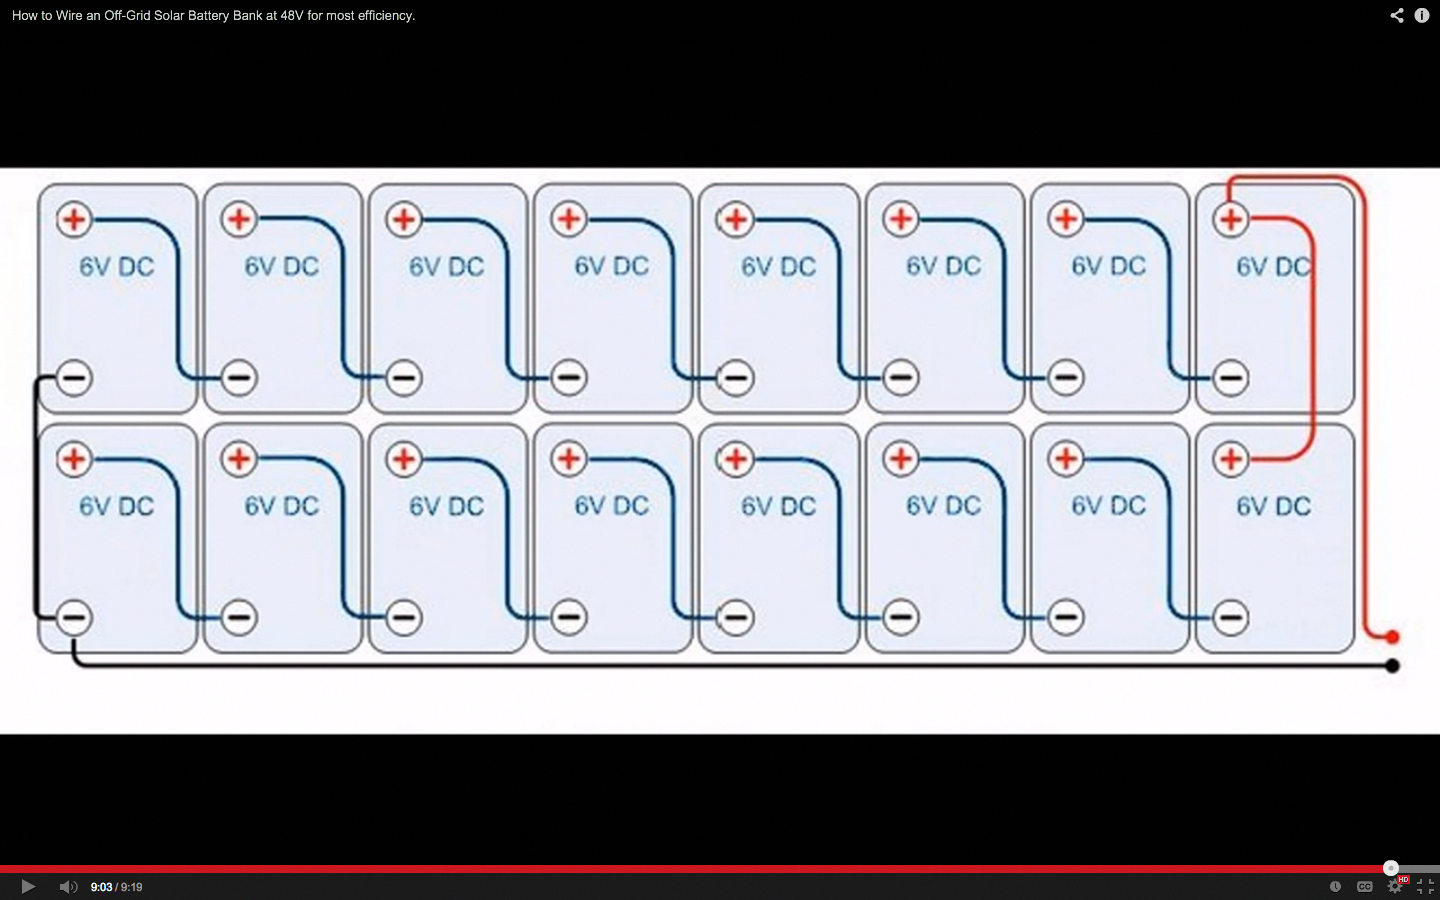 hight resolution of simple battery bank wiring diagram for 48volts dc based on 6v batteries